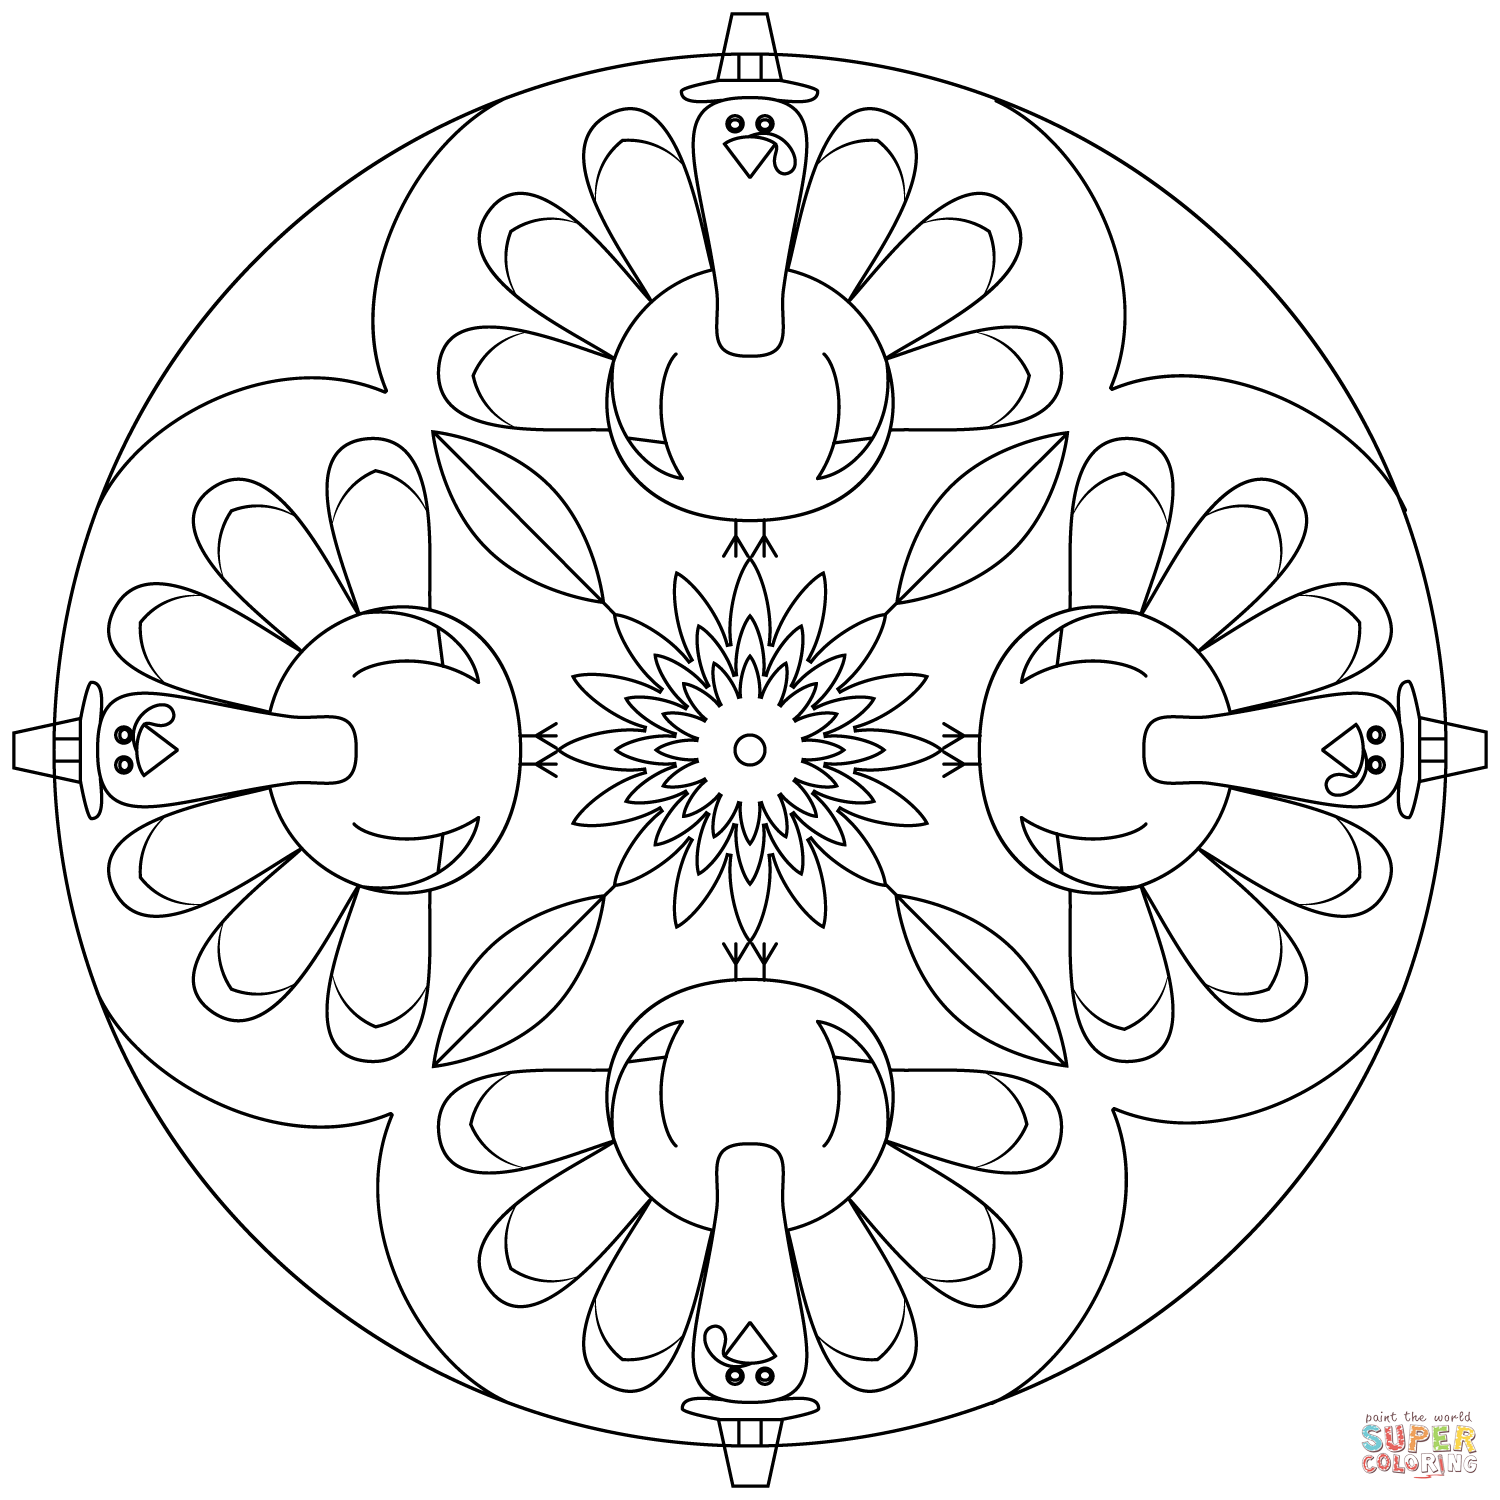 Click the thanksgiving mandala coloring pages to view printable version or color it online compatible with ipad and android tablets